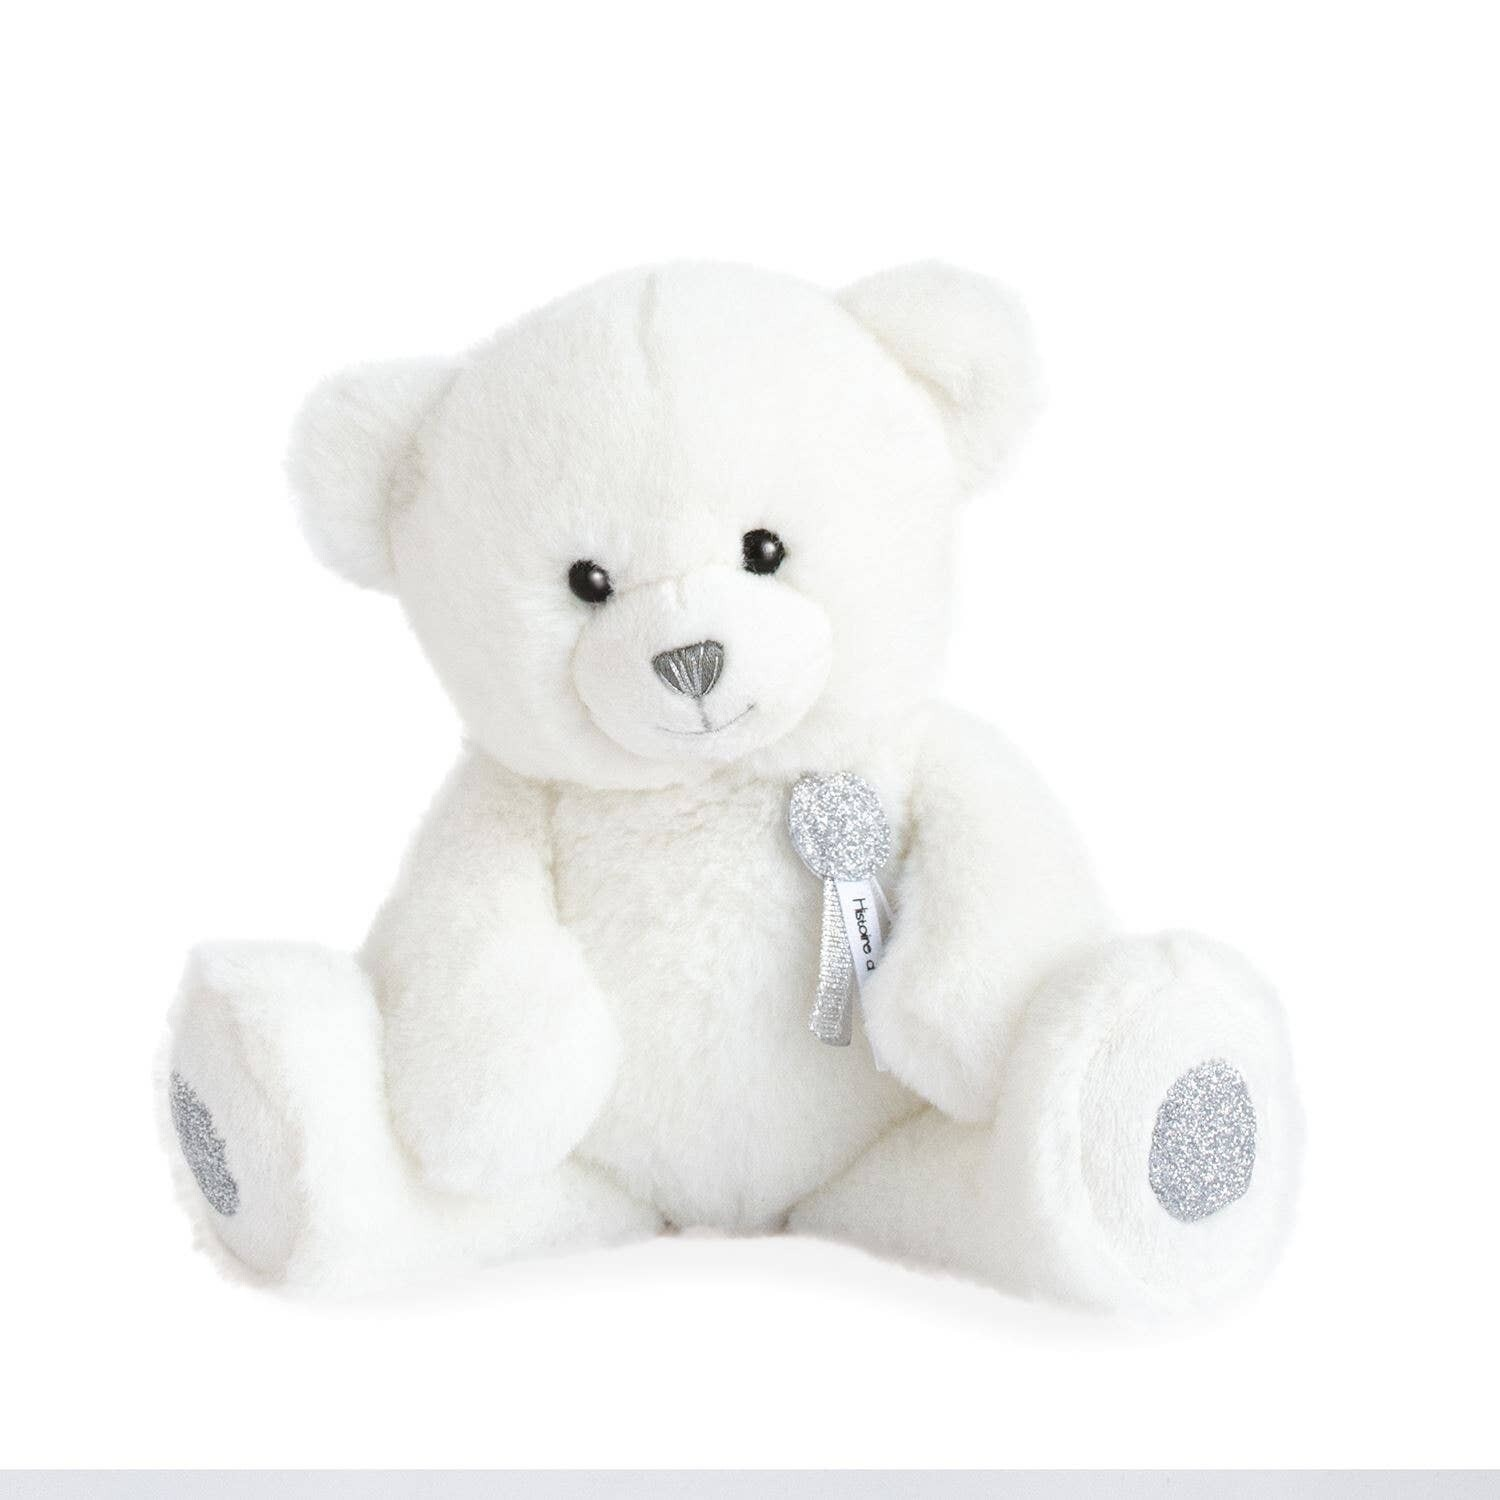 Doudou Et Compagnie - Charming Teddy Bear with Glitter Accents